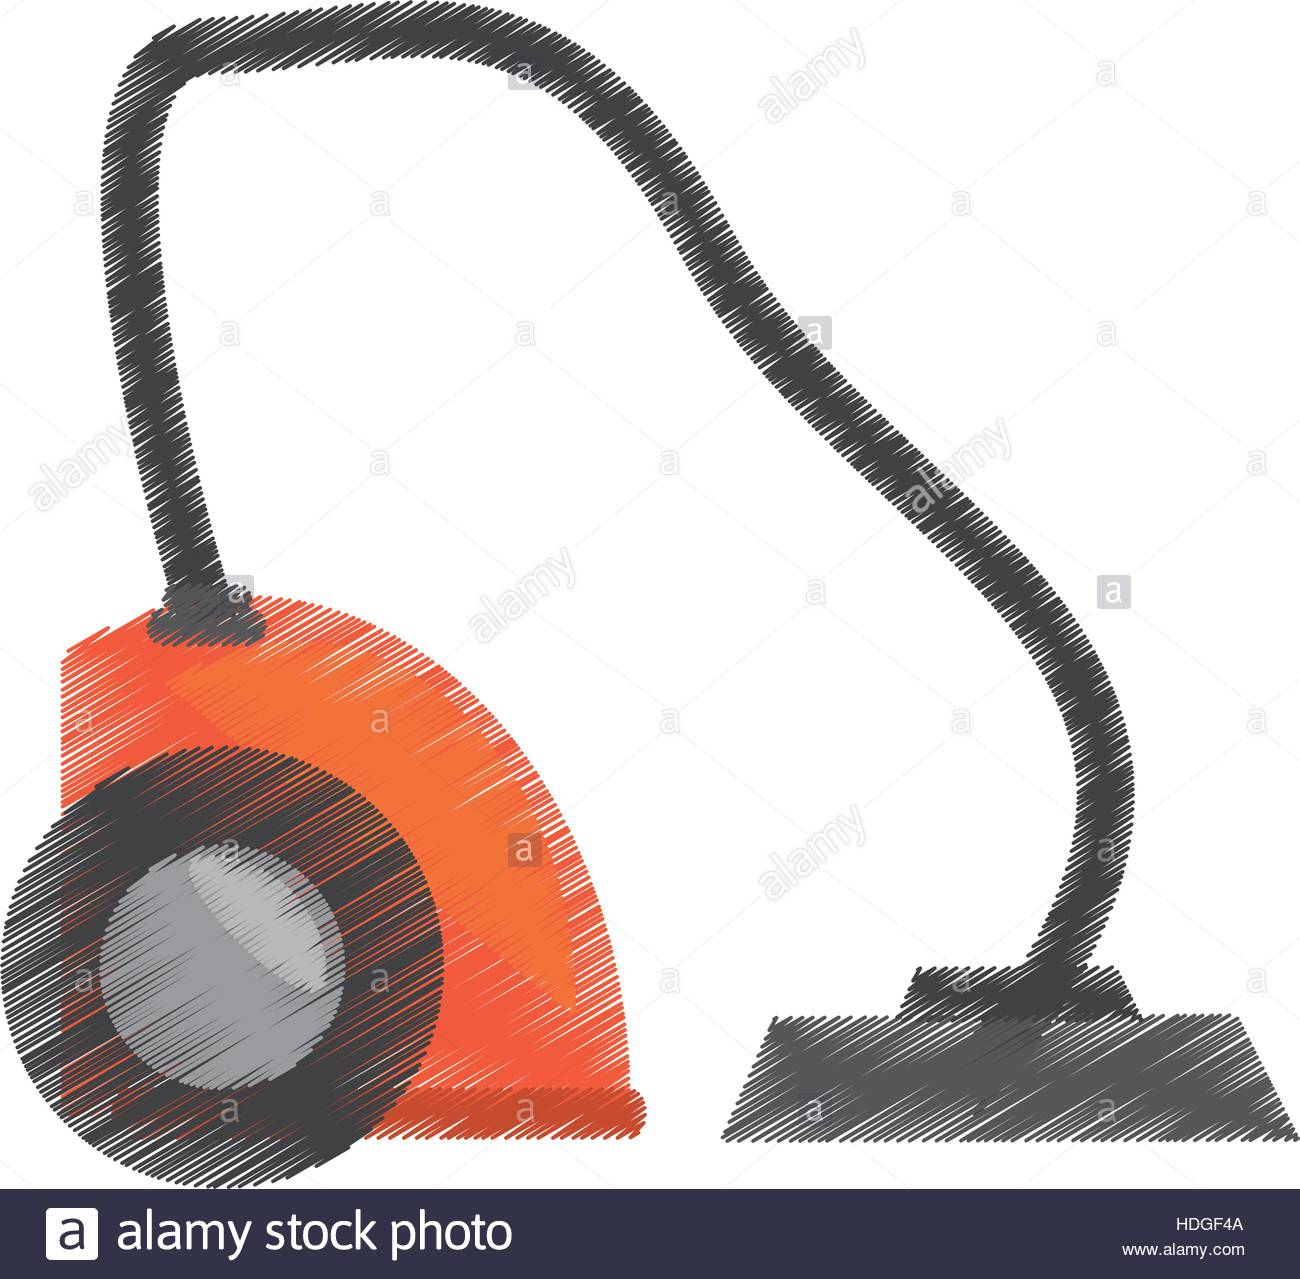 1300x1279 Drawing Modern Vacuum Cleaner Appliance Vector Illustration Eps 10